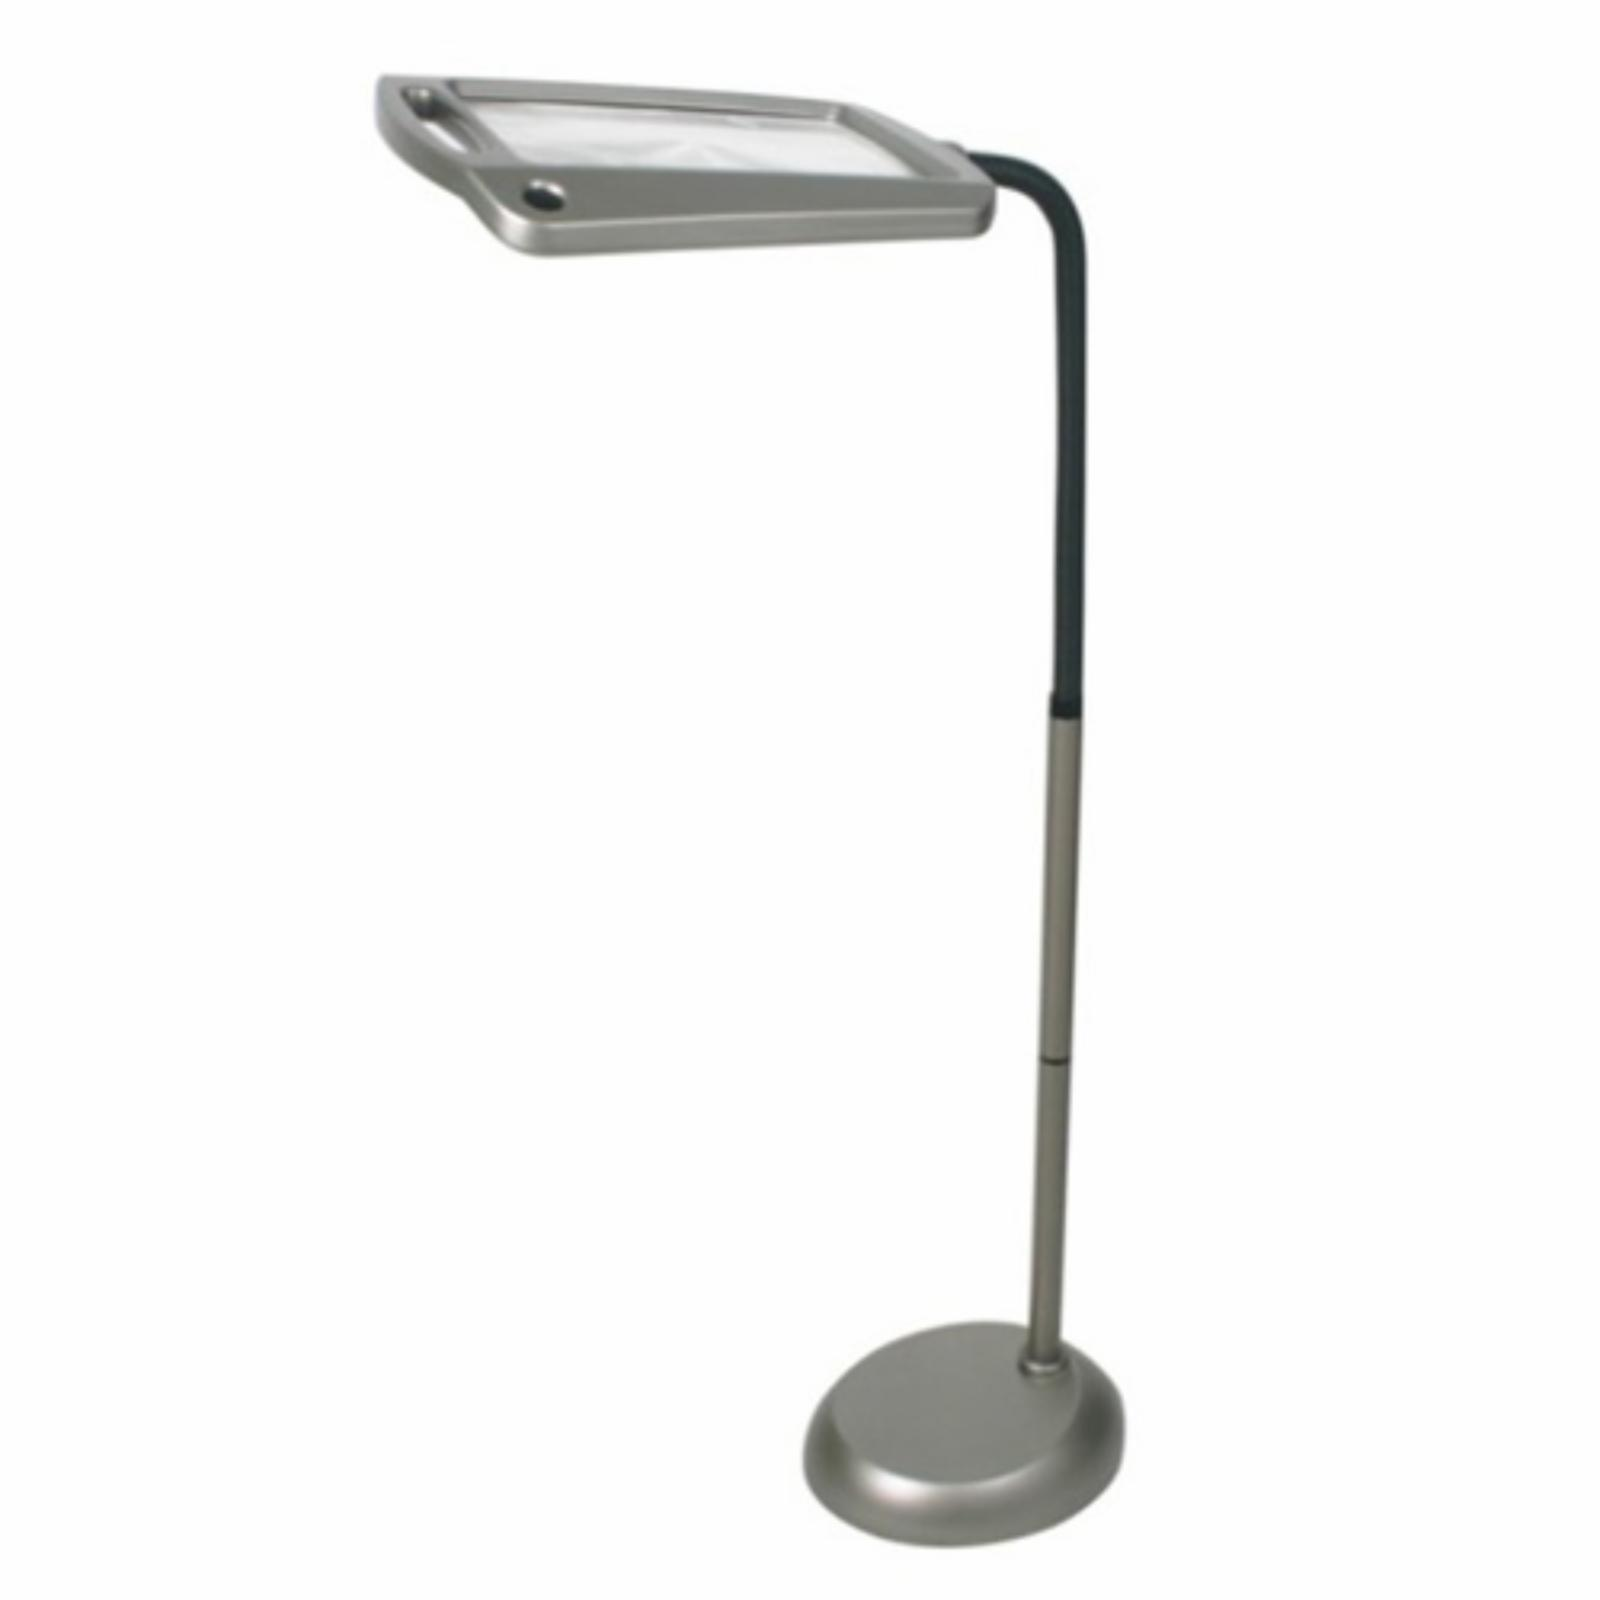 Daylight 24 Full Page Magnifier Floor Lamp - 402039-05